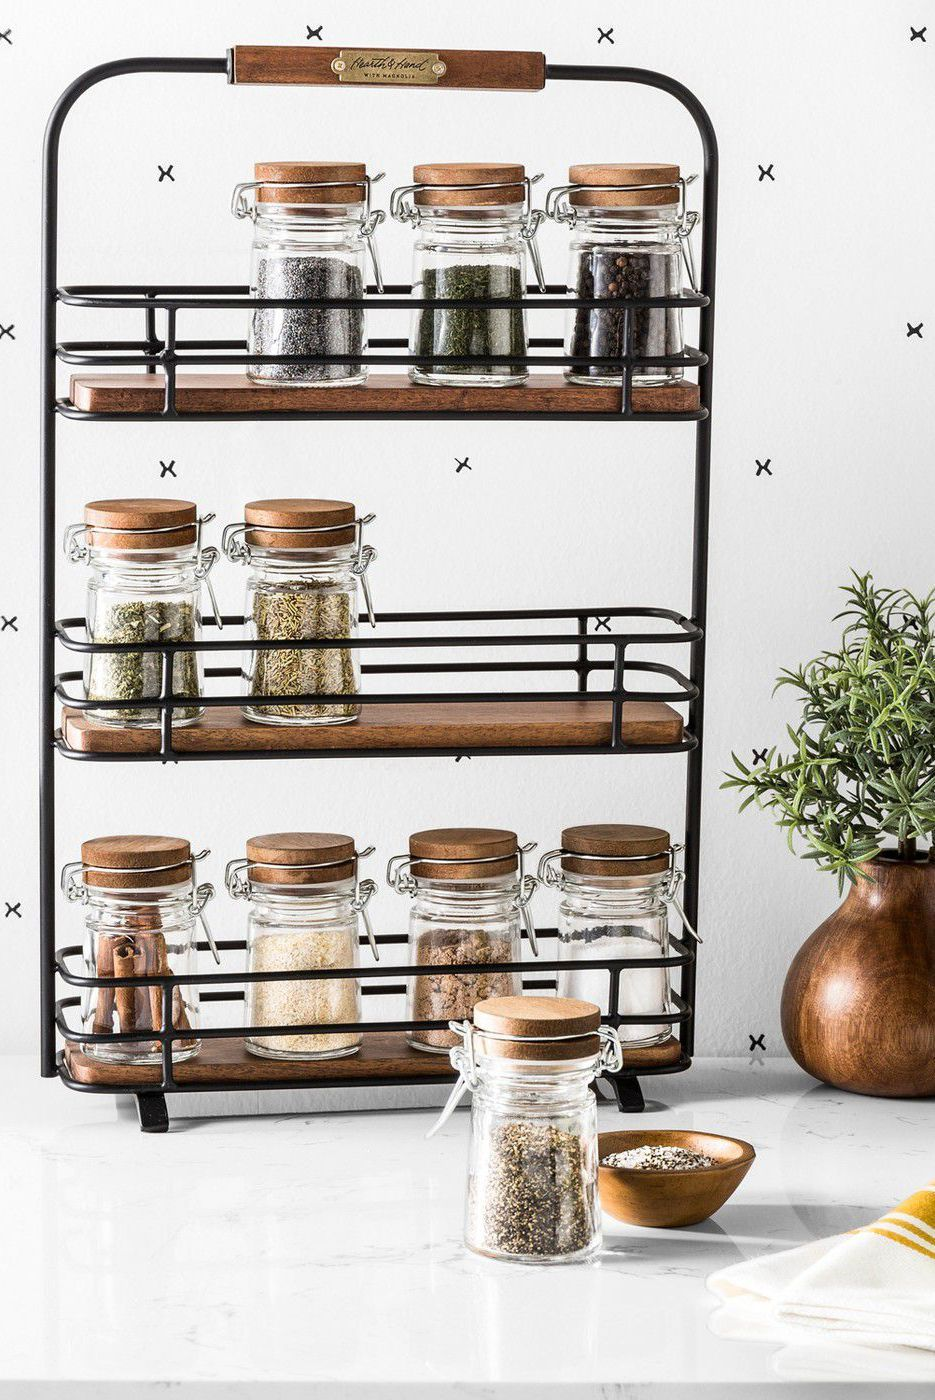 This Genius Spice Organizer On Amazon Will Keep Your Kitchen Cabinets Mess Free Spice Organization Kitchen Spice Racks Wall Spice Rack